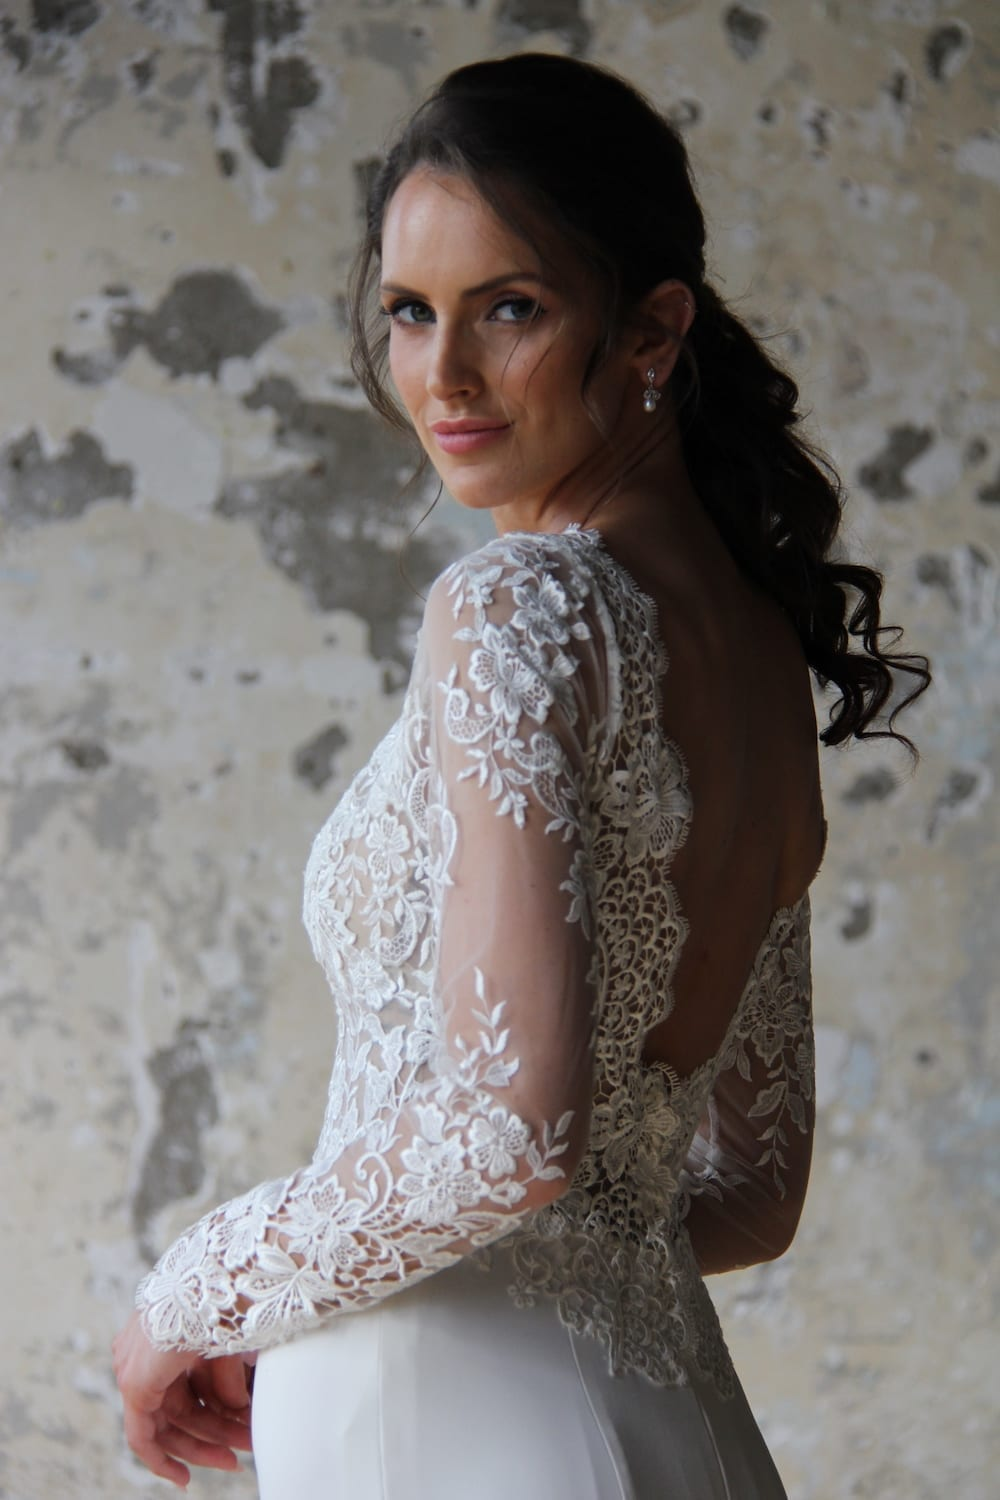 Female model wearing Vinka Design Modern Muse Wedding Dress. In chic warehouse the side detail of a gown with v-neckline, intricate bodice, long lace sleeves, and Bridal crepe skirt.